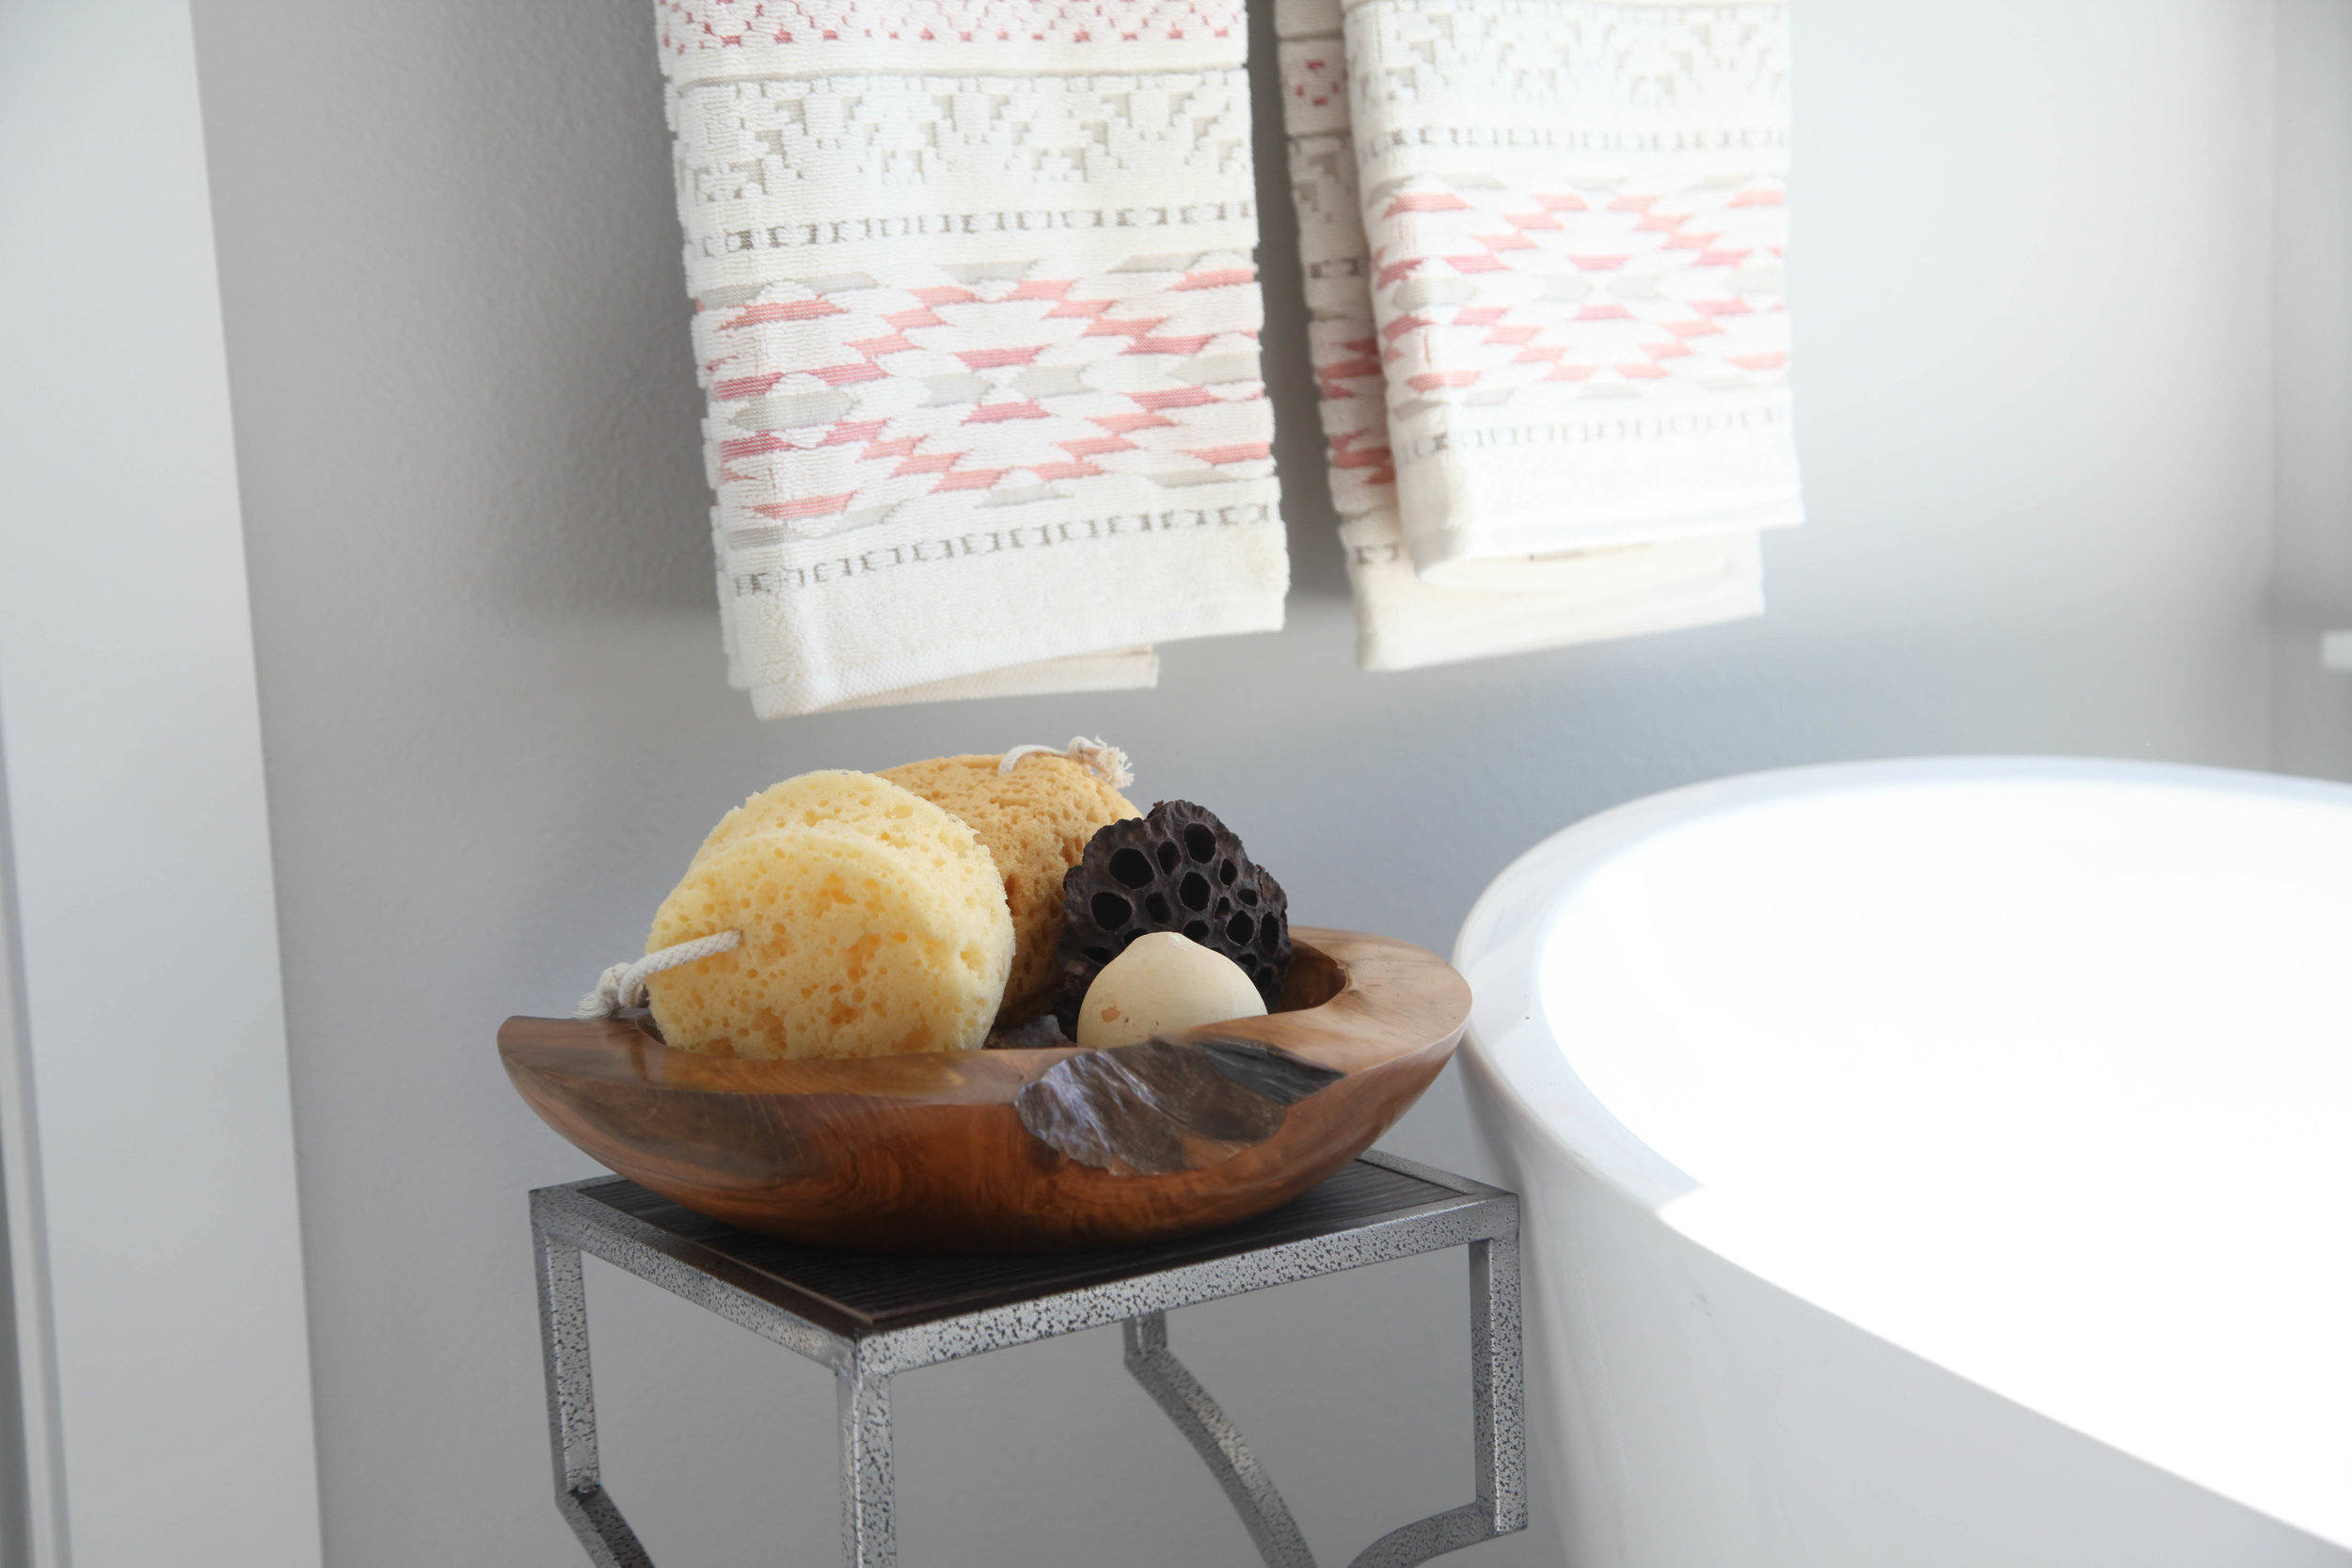 Rustic bowl with sponges next to a soaking tub is a must.